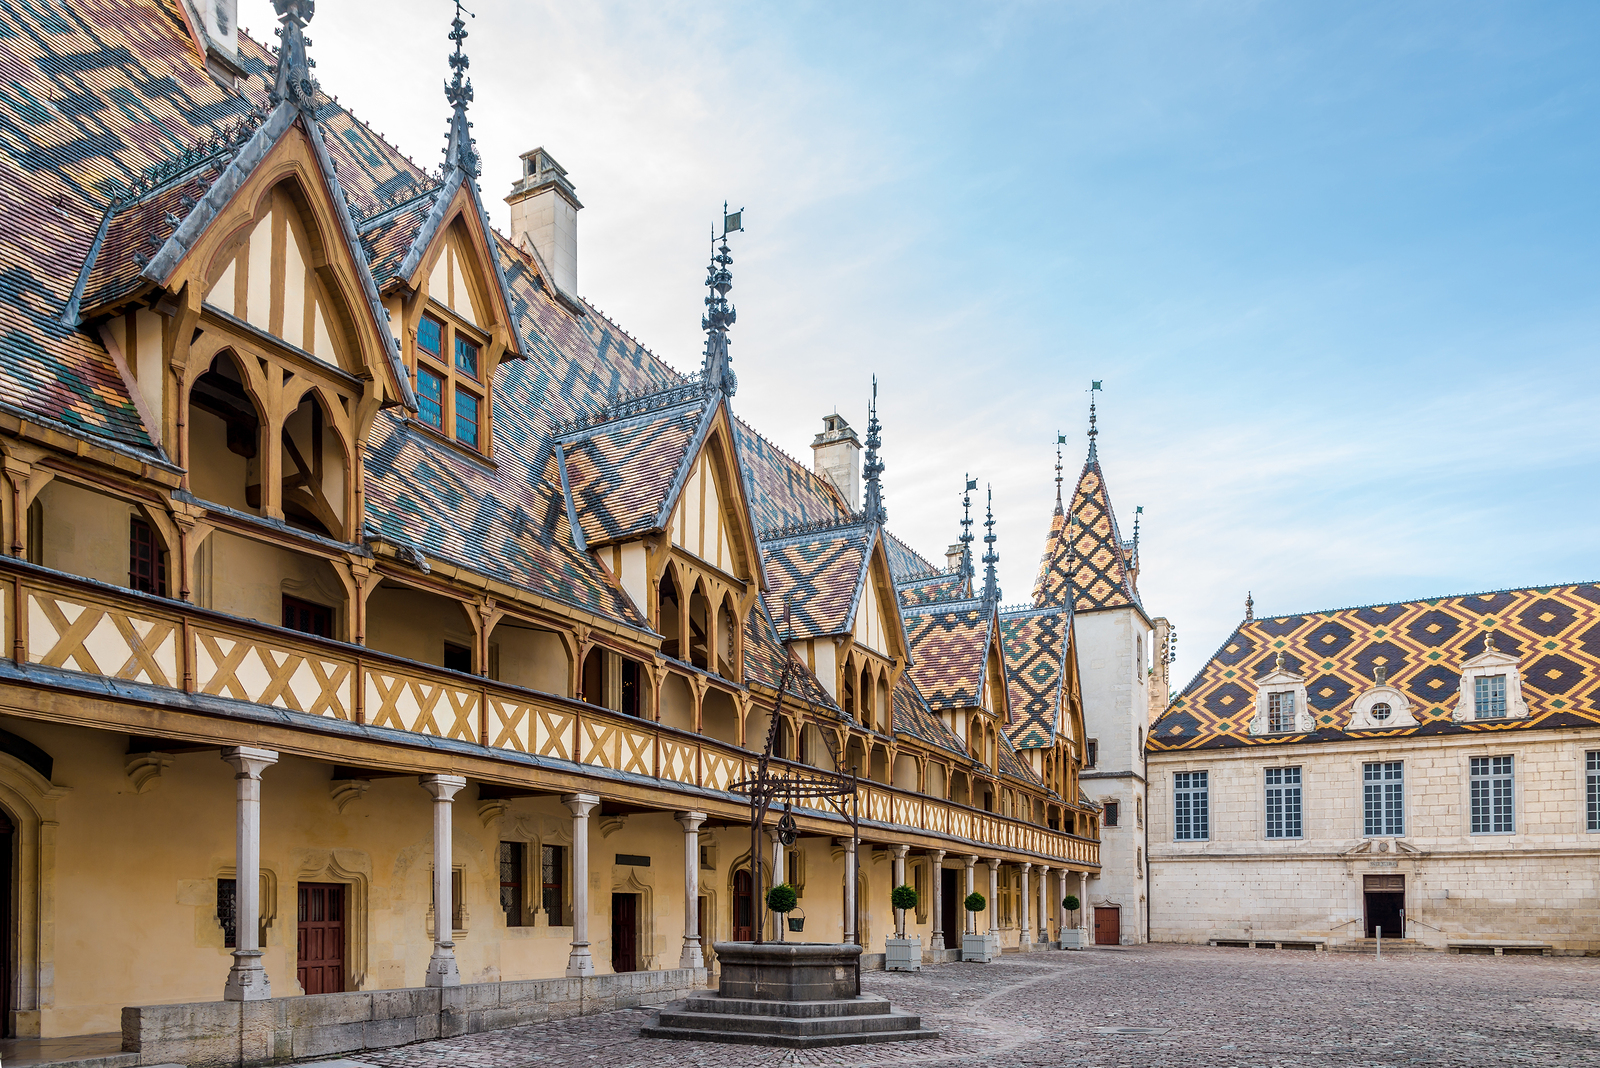 Courtyard of Hospices de Beaune - France